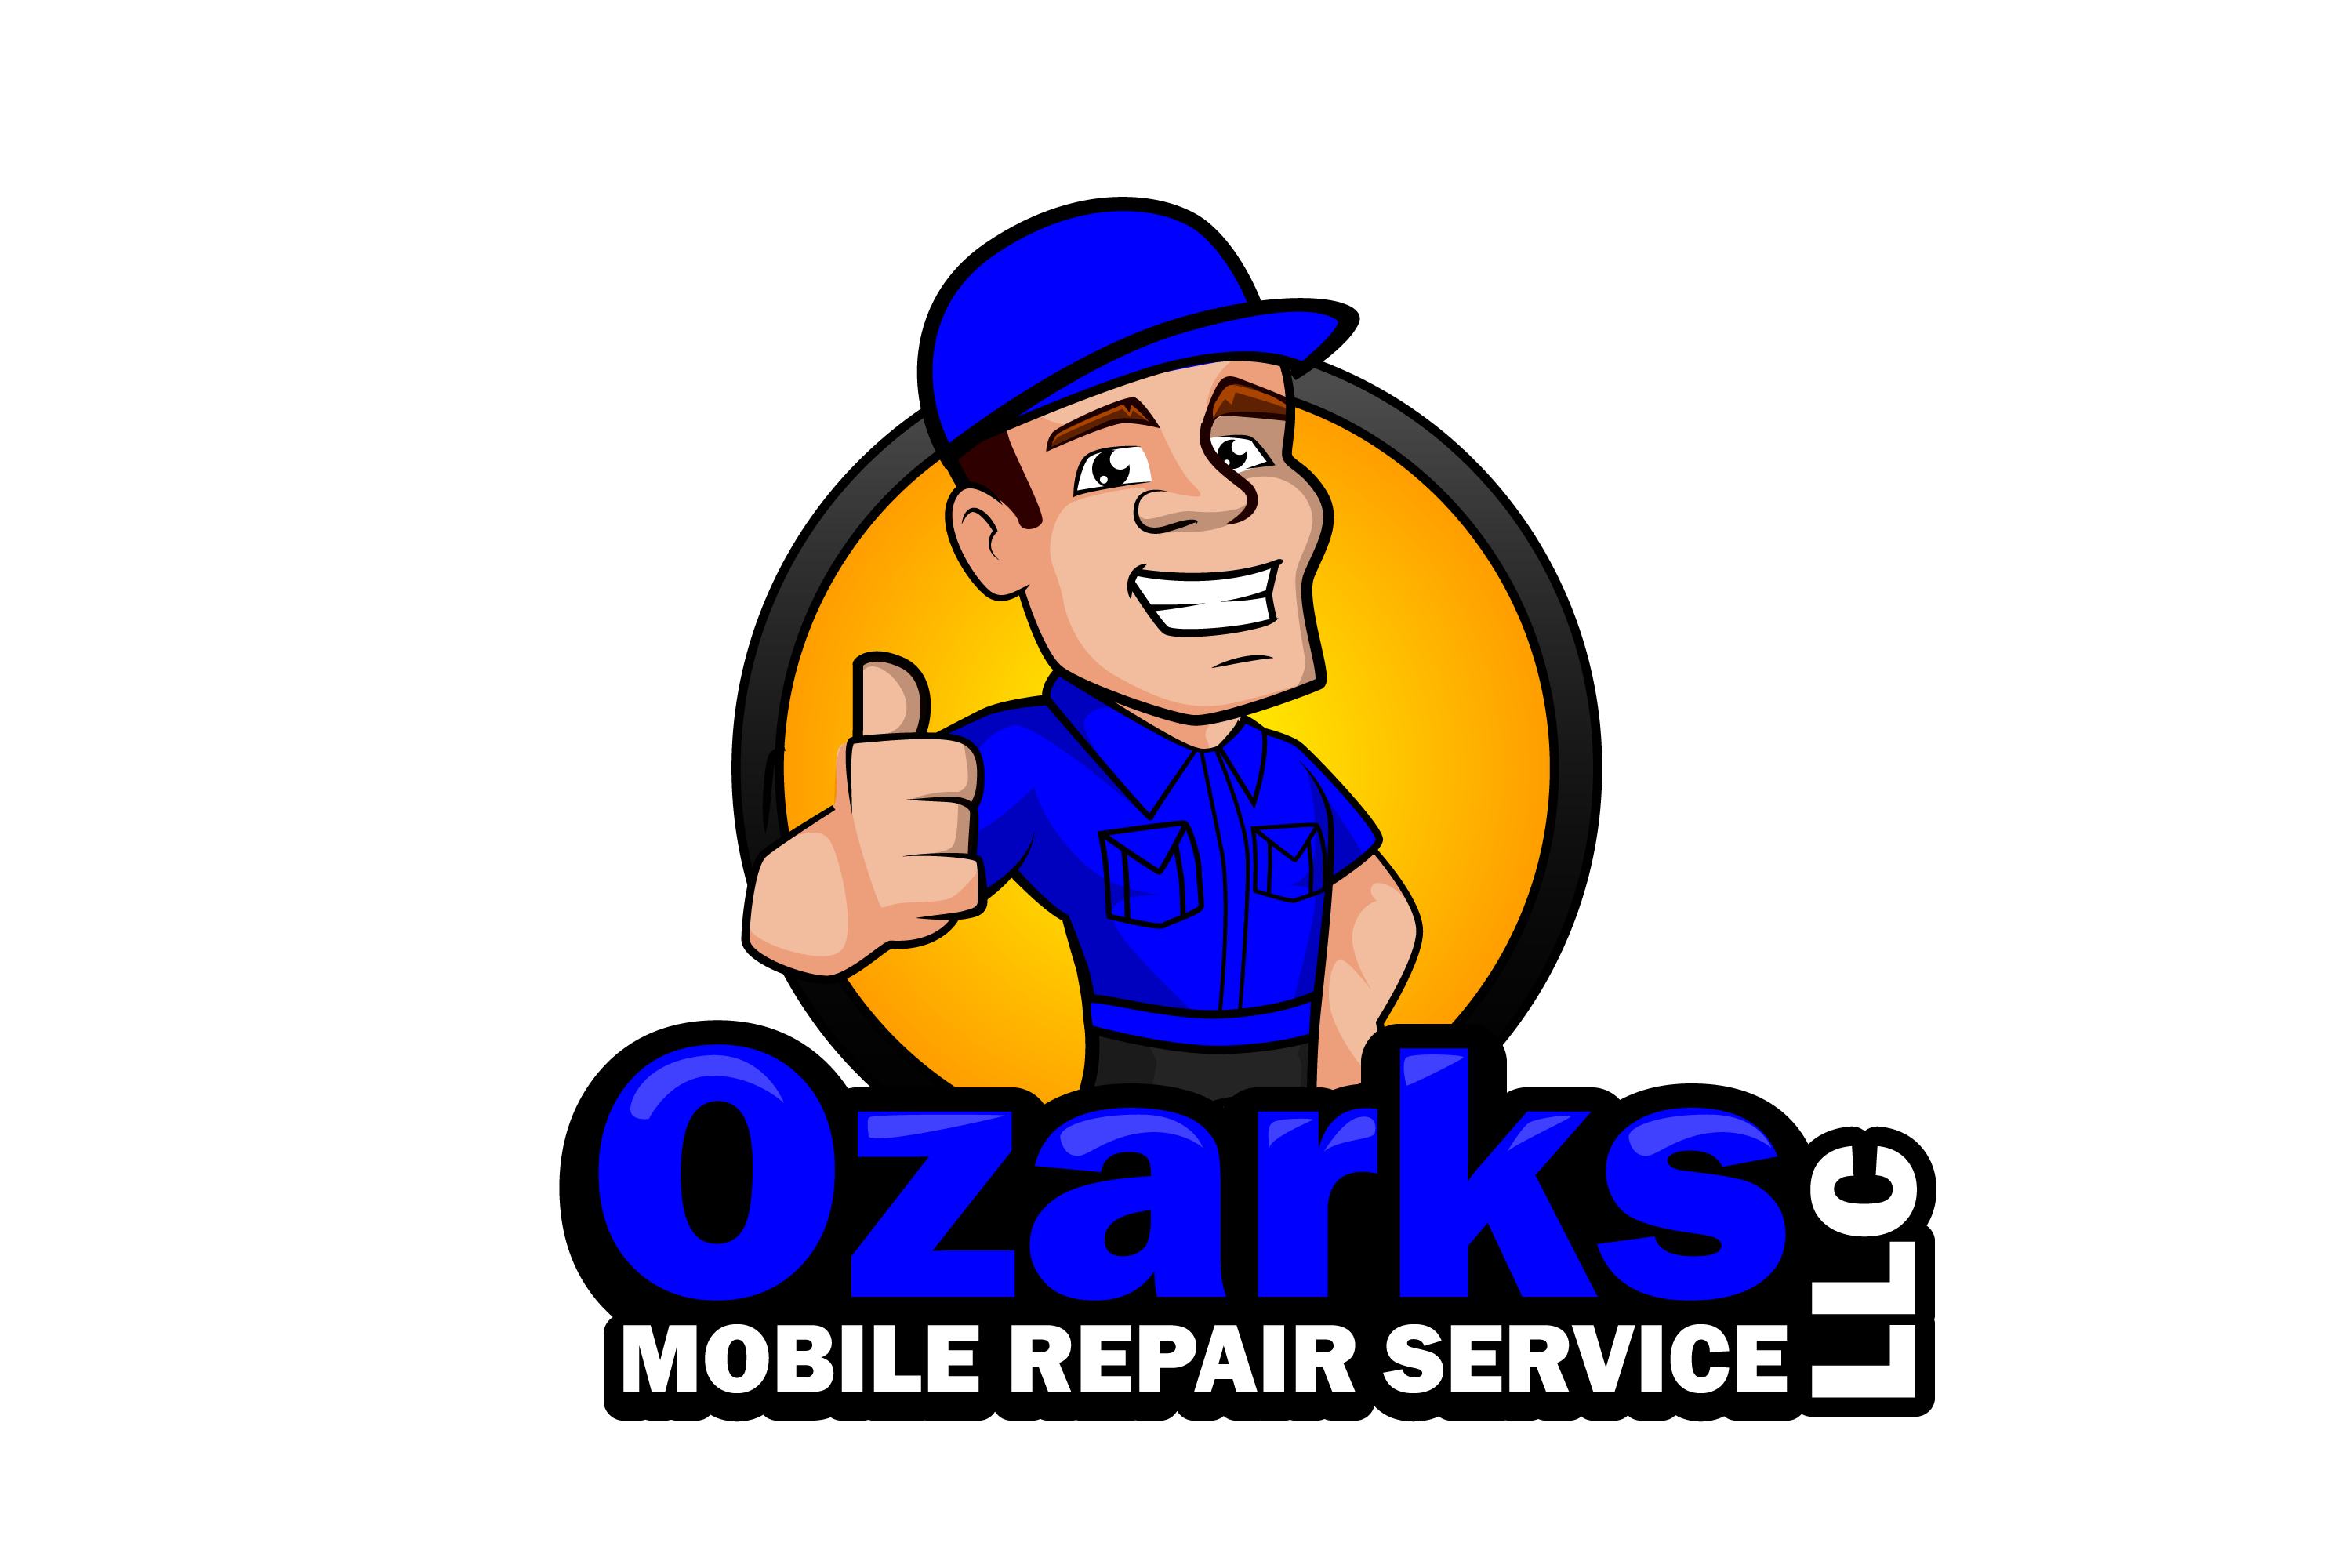 Mechanic clipart mobile mechanic. Ozarks auto repair service